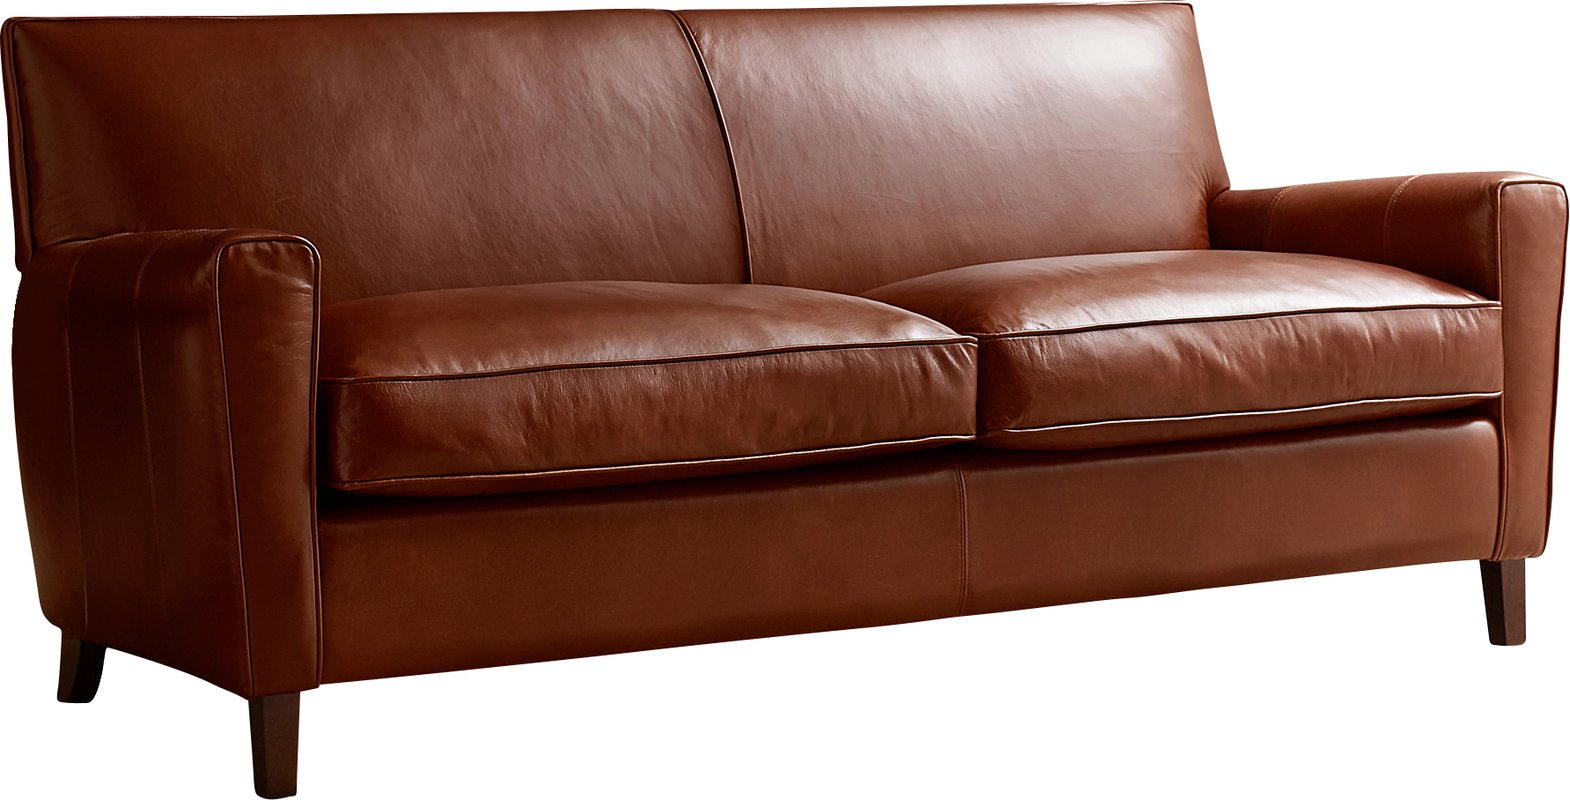 foster leather sofa SUPVVBC